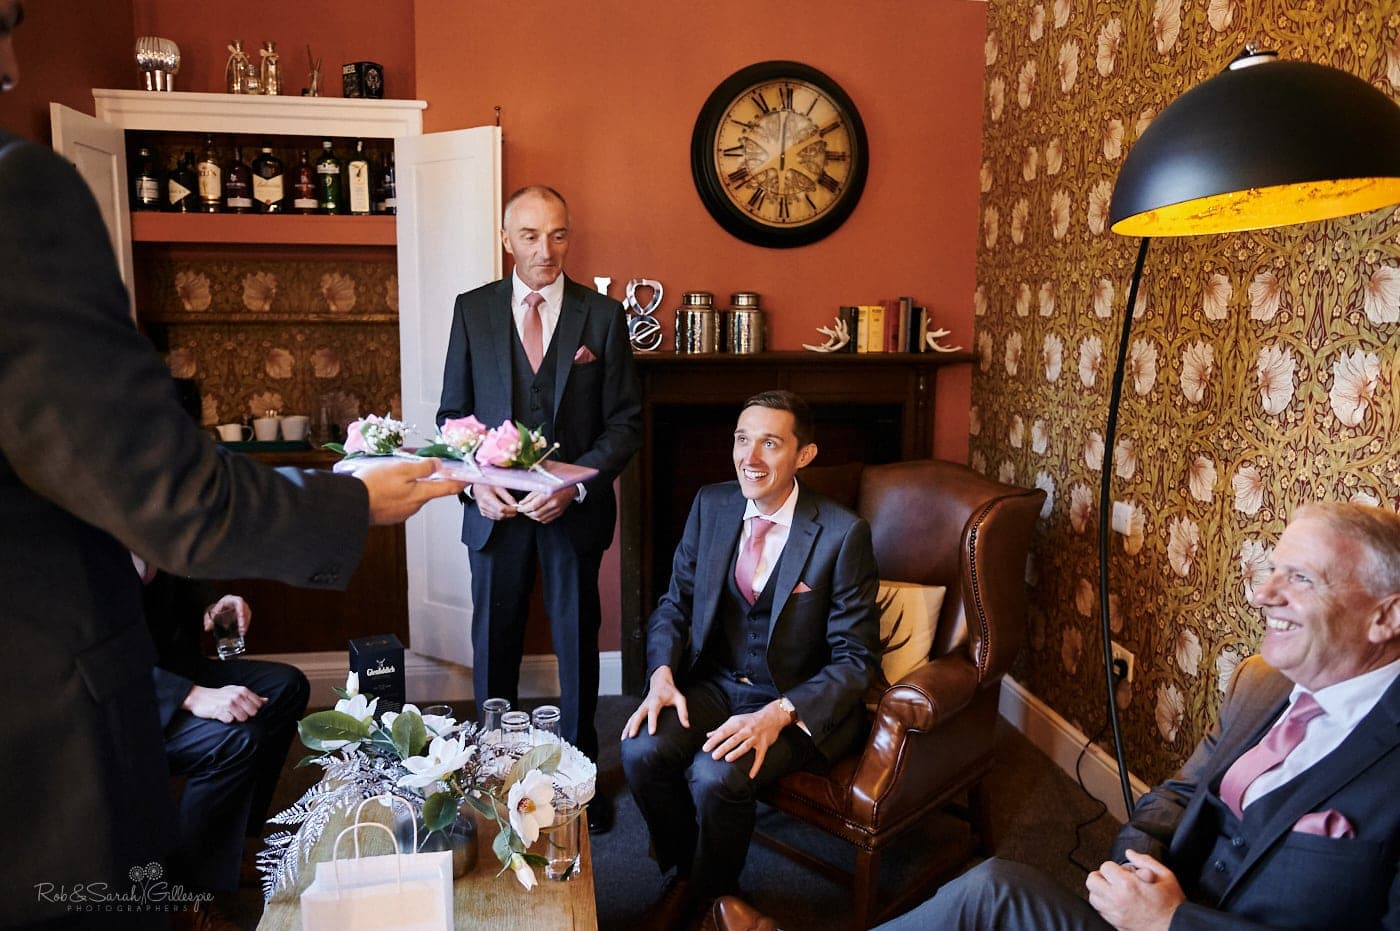 Groom and groomsmen prepare for wedding in Pimpernel Suite at Pendrell Hall